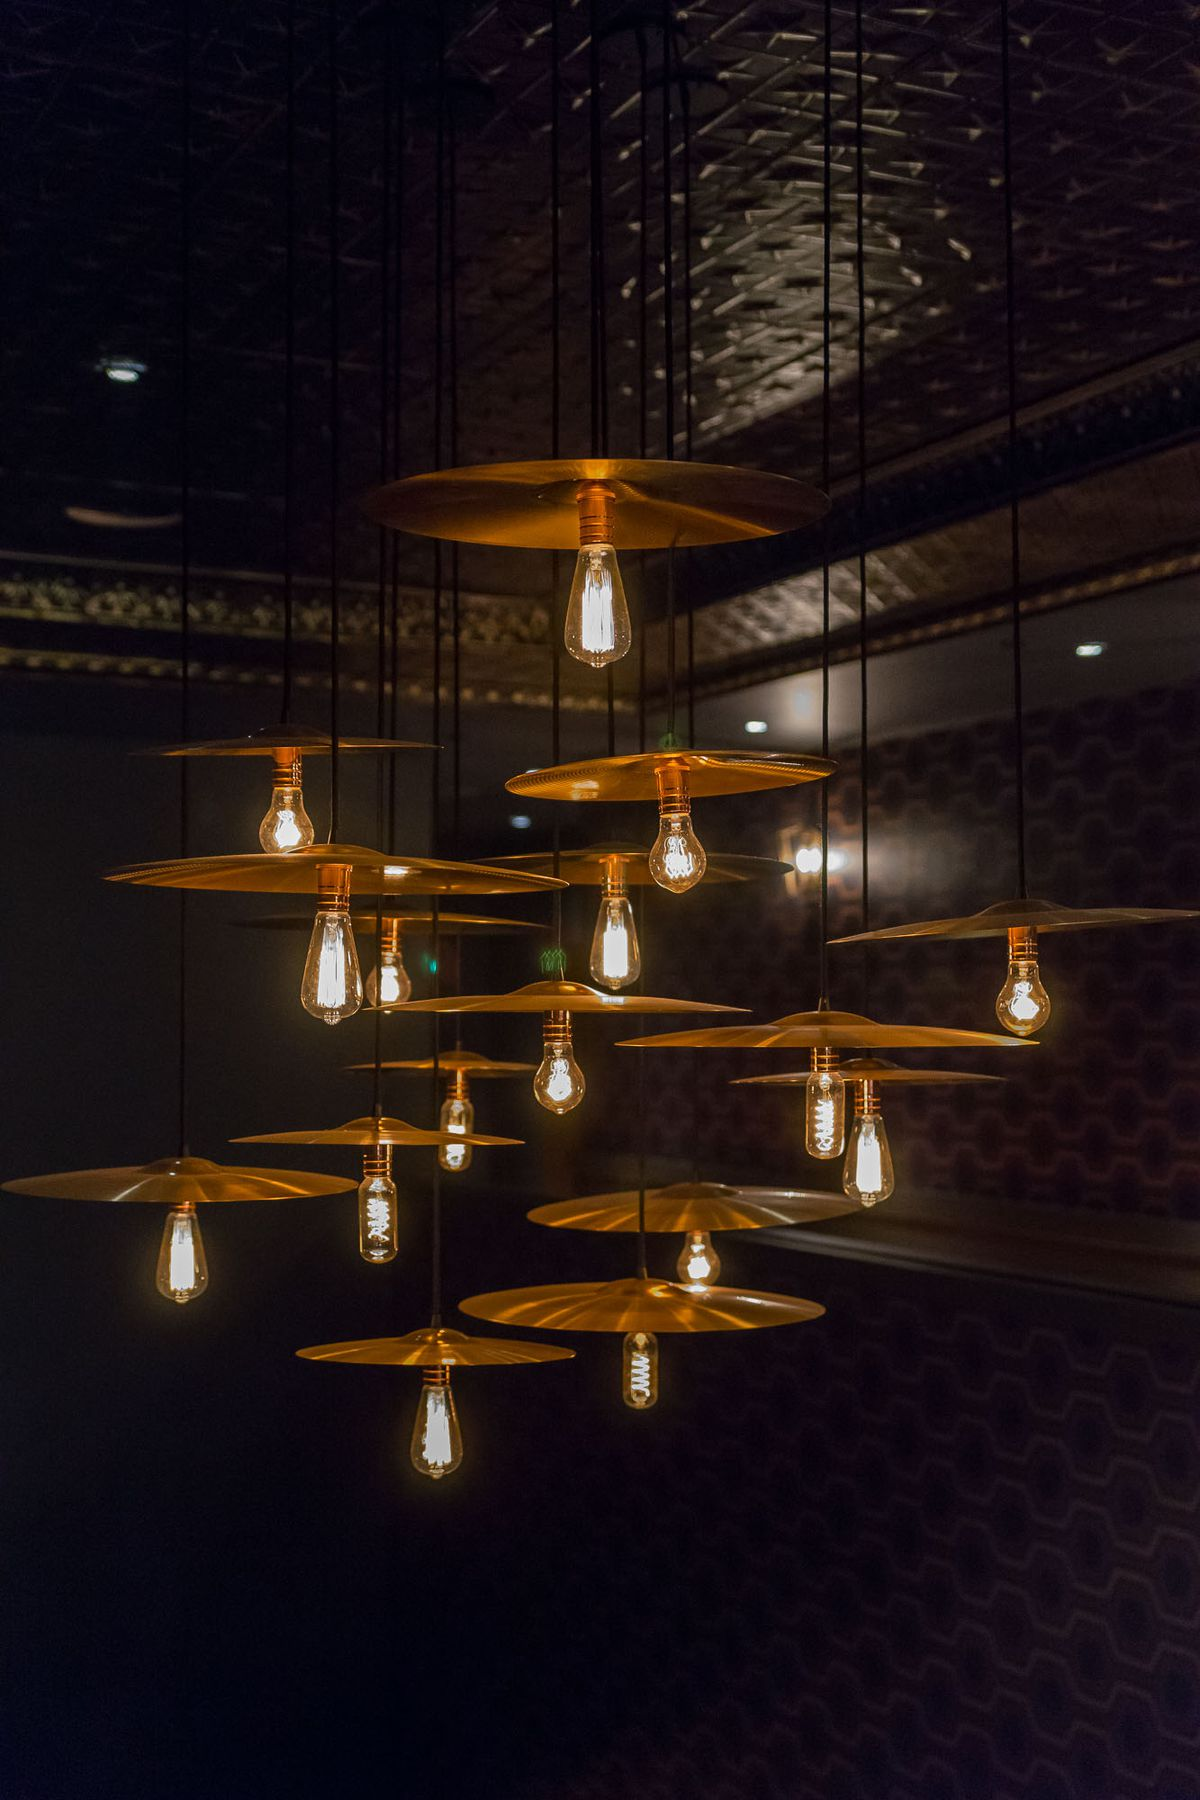 The cymbal light fixture at On the Record